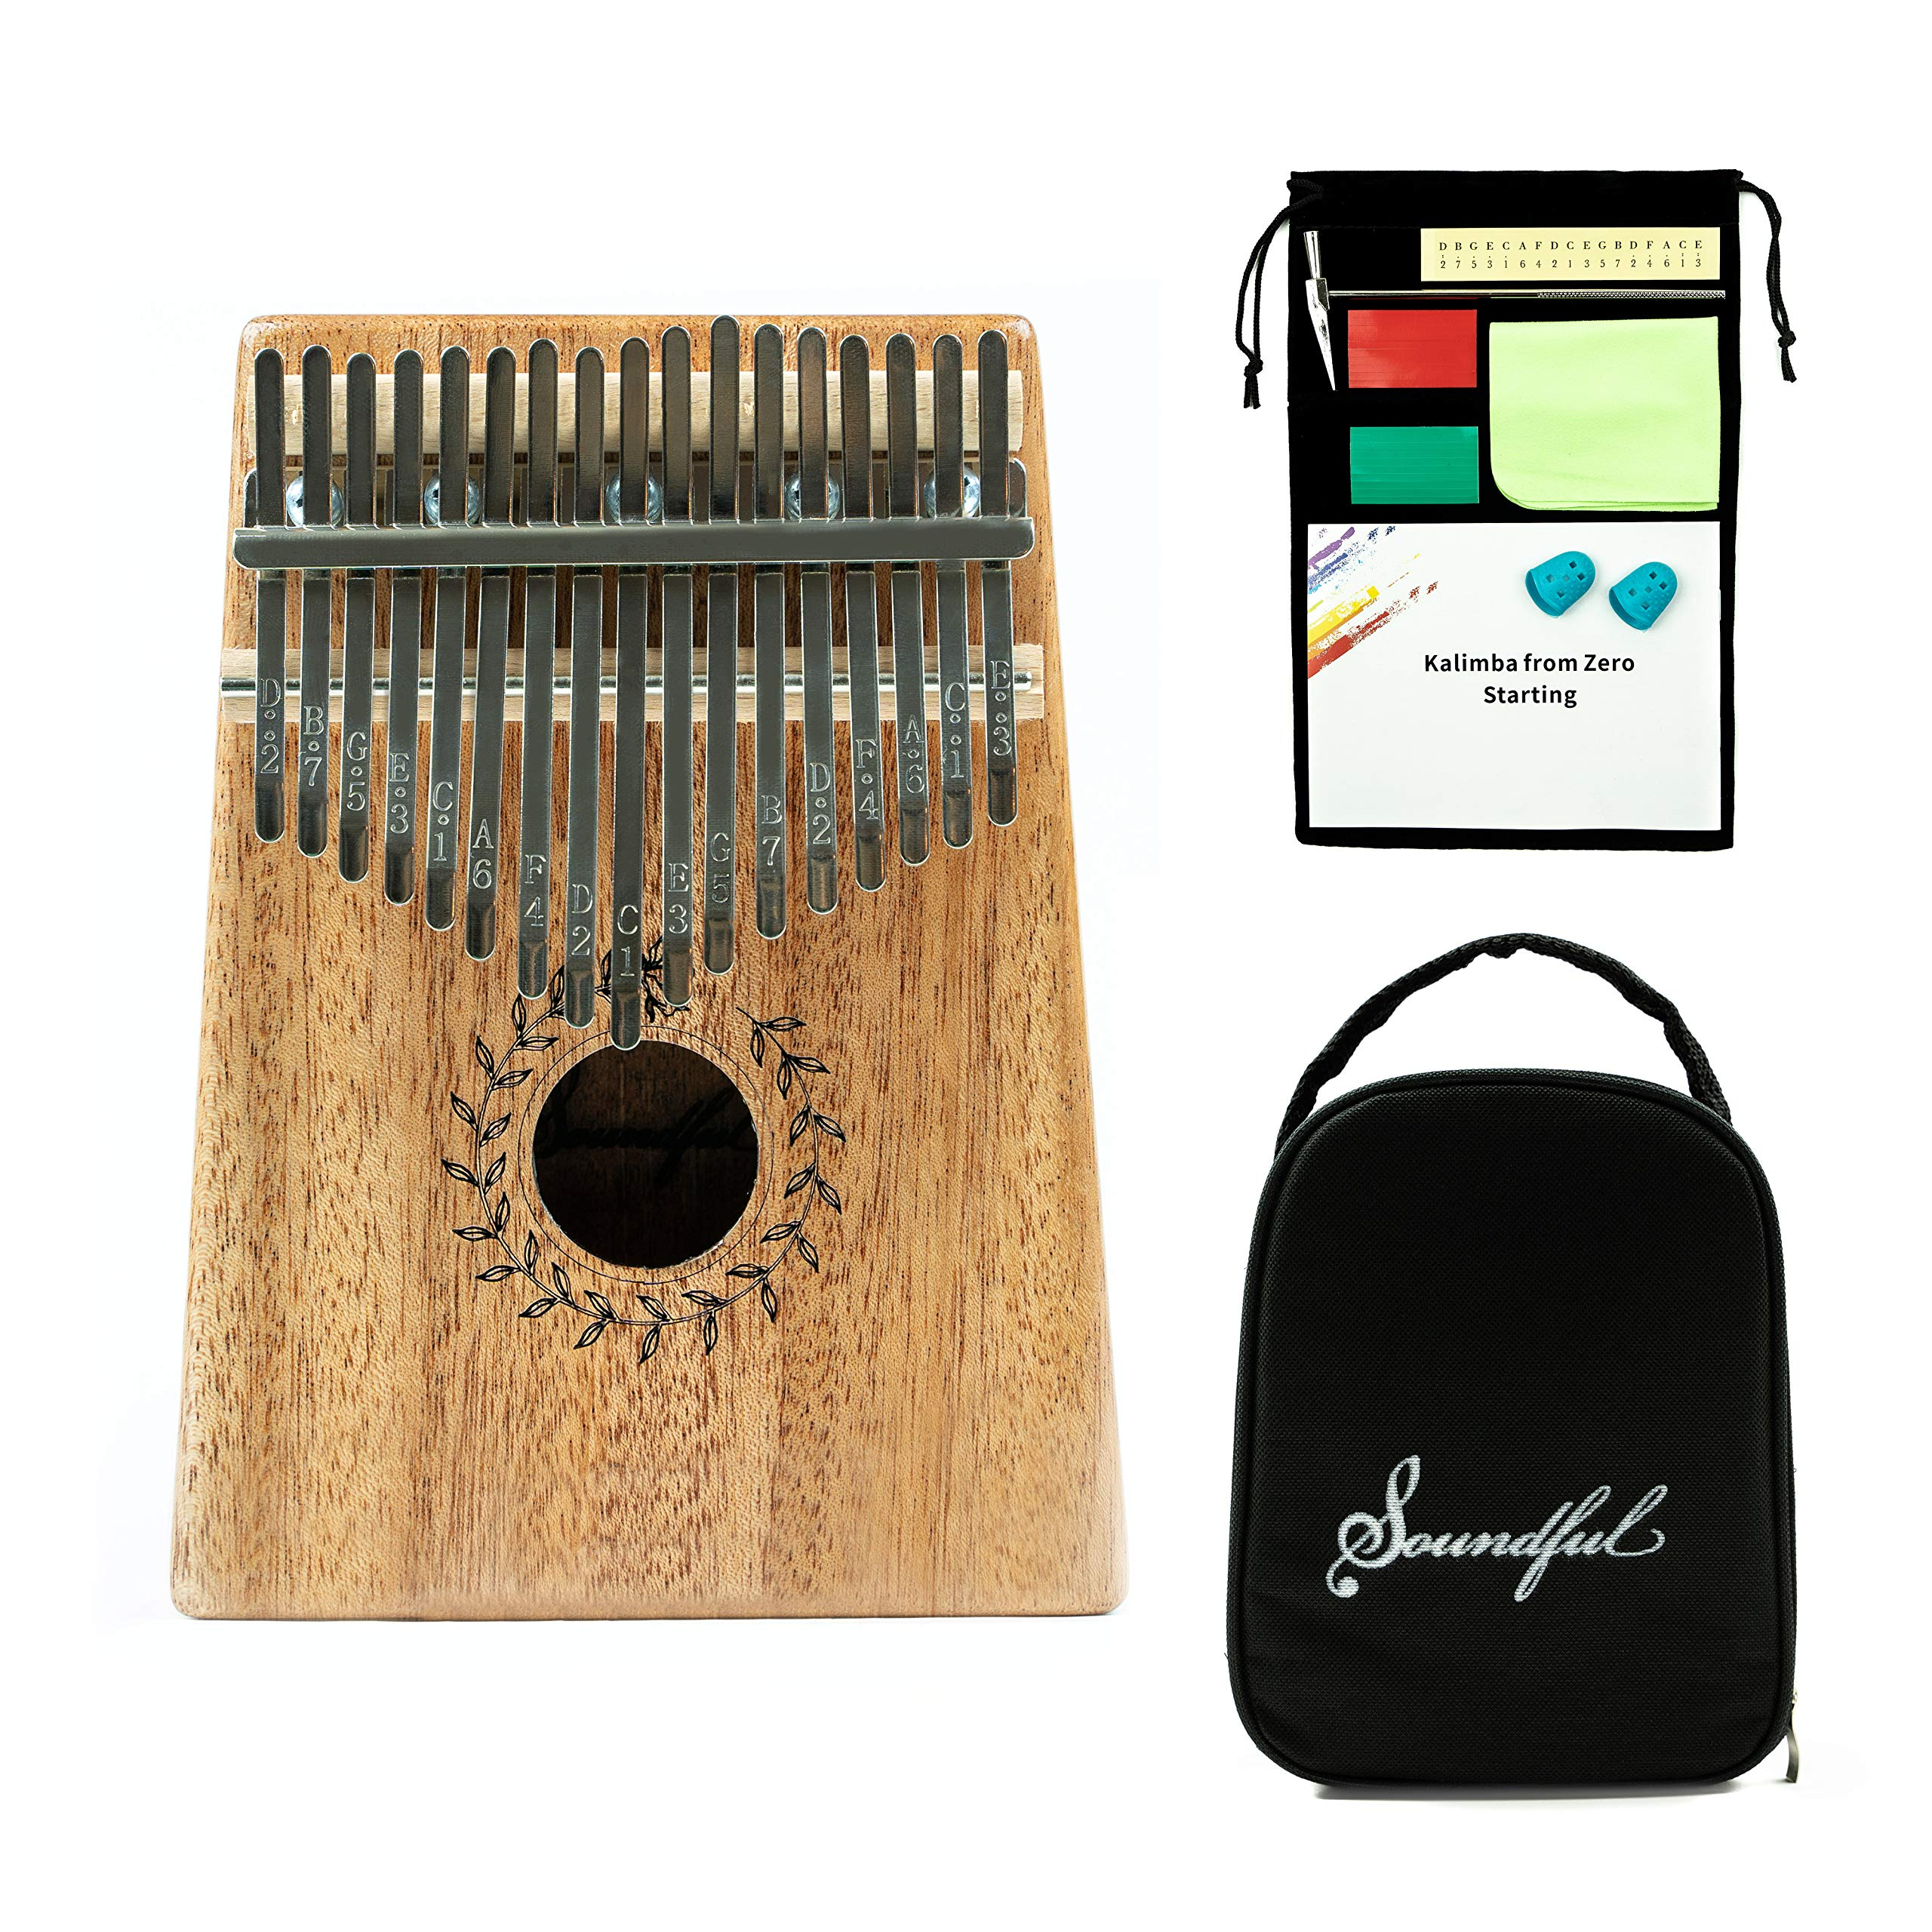 Soundful 17 Key Kalimba Thumb Piano, Solid Mahogany Body Finger Piano, Professional Mbira Musical Instrument with Tuning Hammer and Protective Case